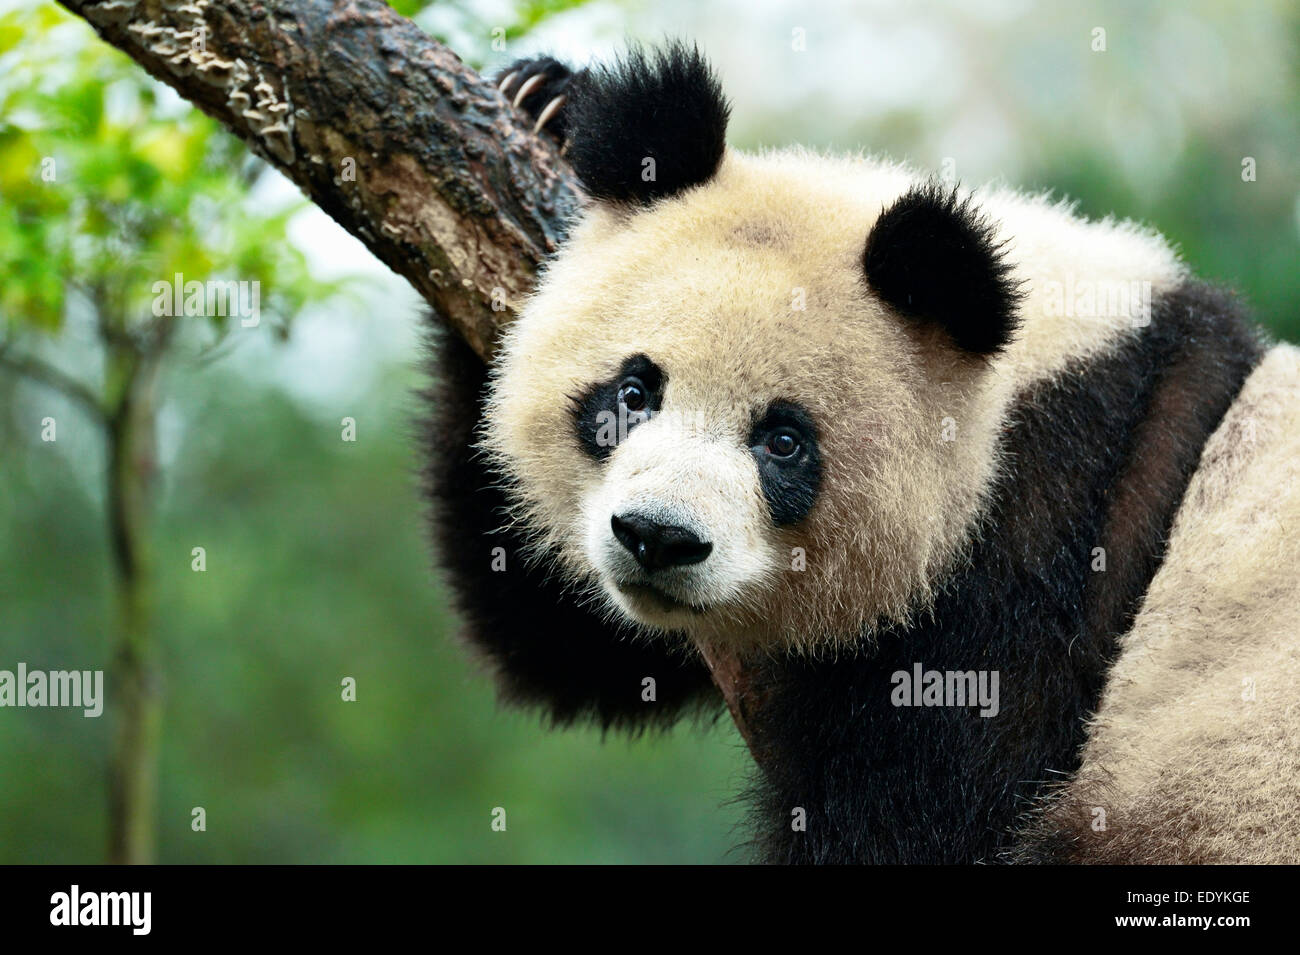 Giant Panda (Ailuropoda melanoleuca) perched on a tree, captive, Chengdu Research Base of Giant Panda Breeding or - Stock Image